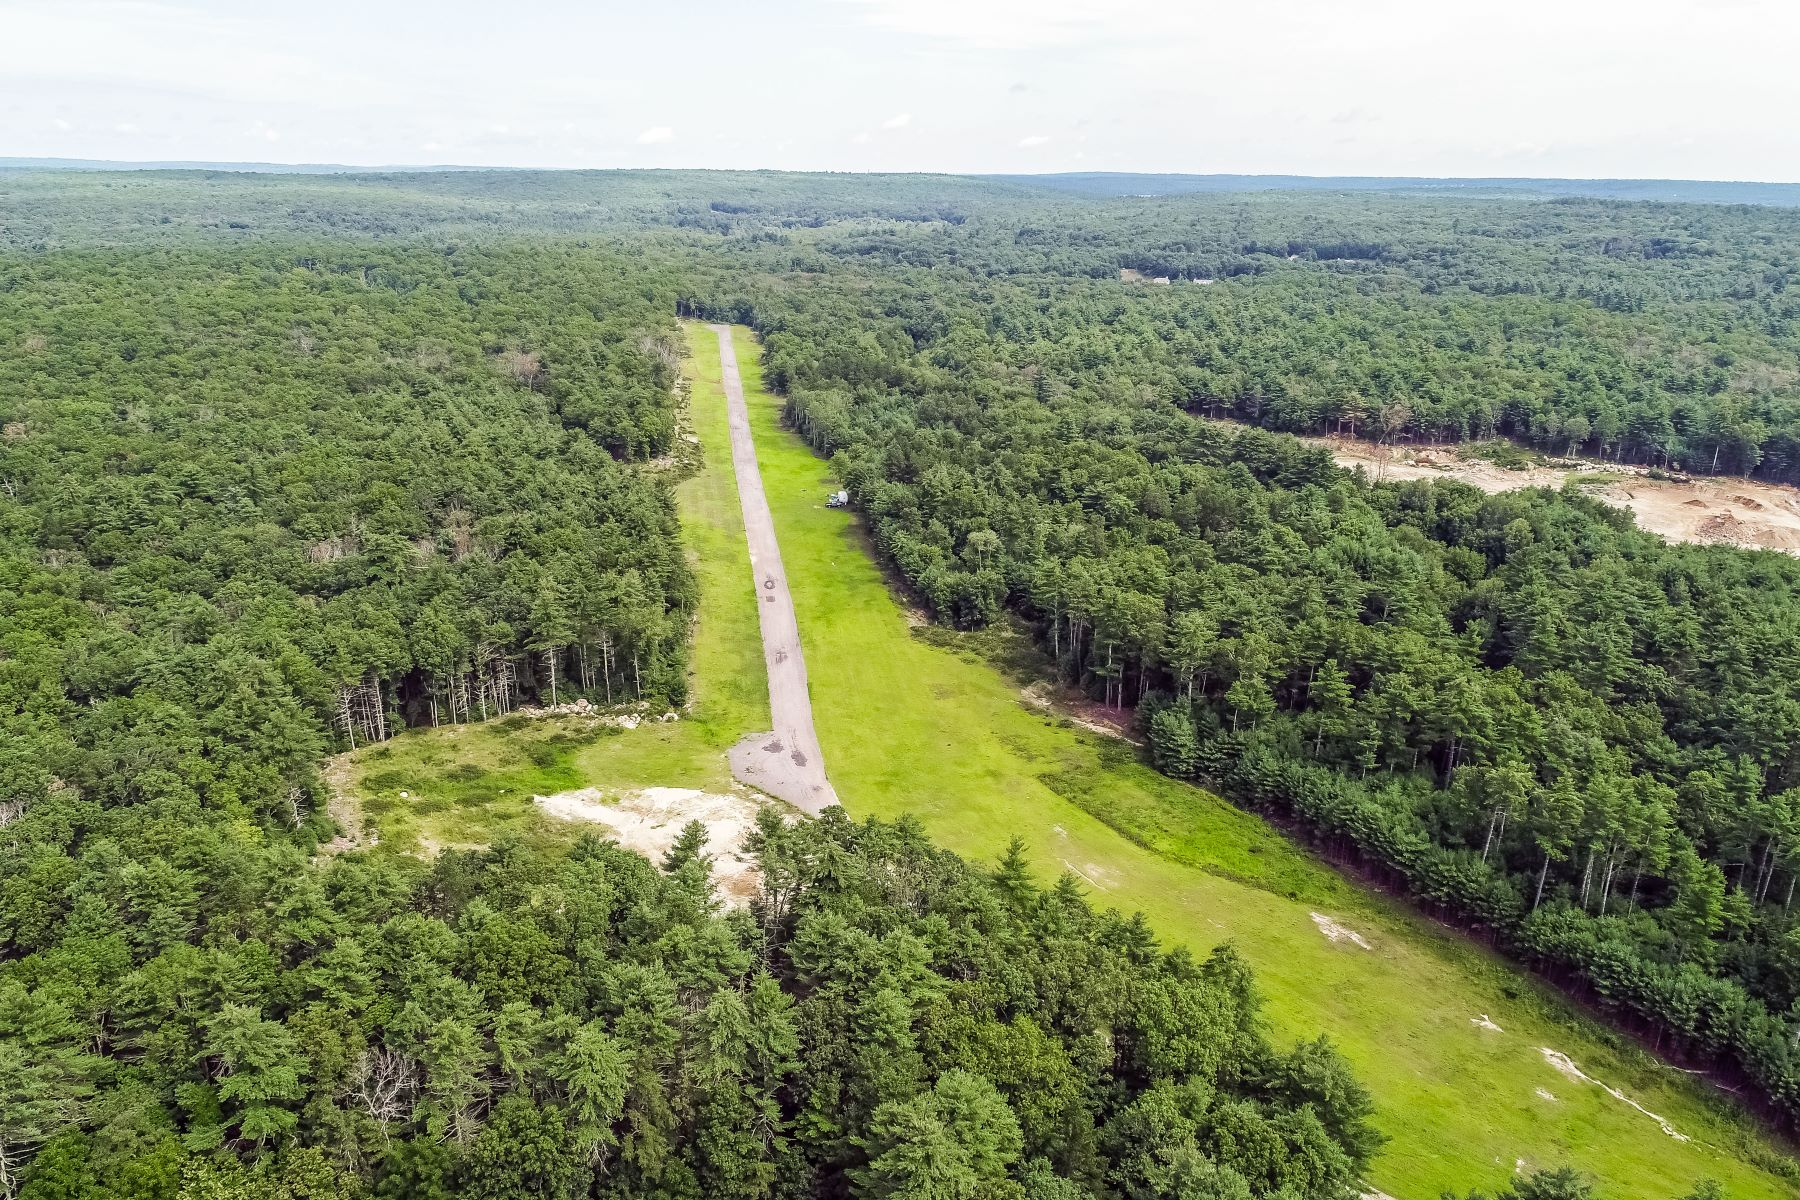 Land for Sale at 0 Town Farm Rd, Coventry, RI Coventry, Rhode Island 02816 United States